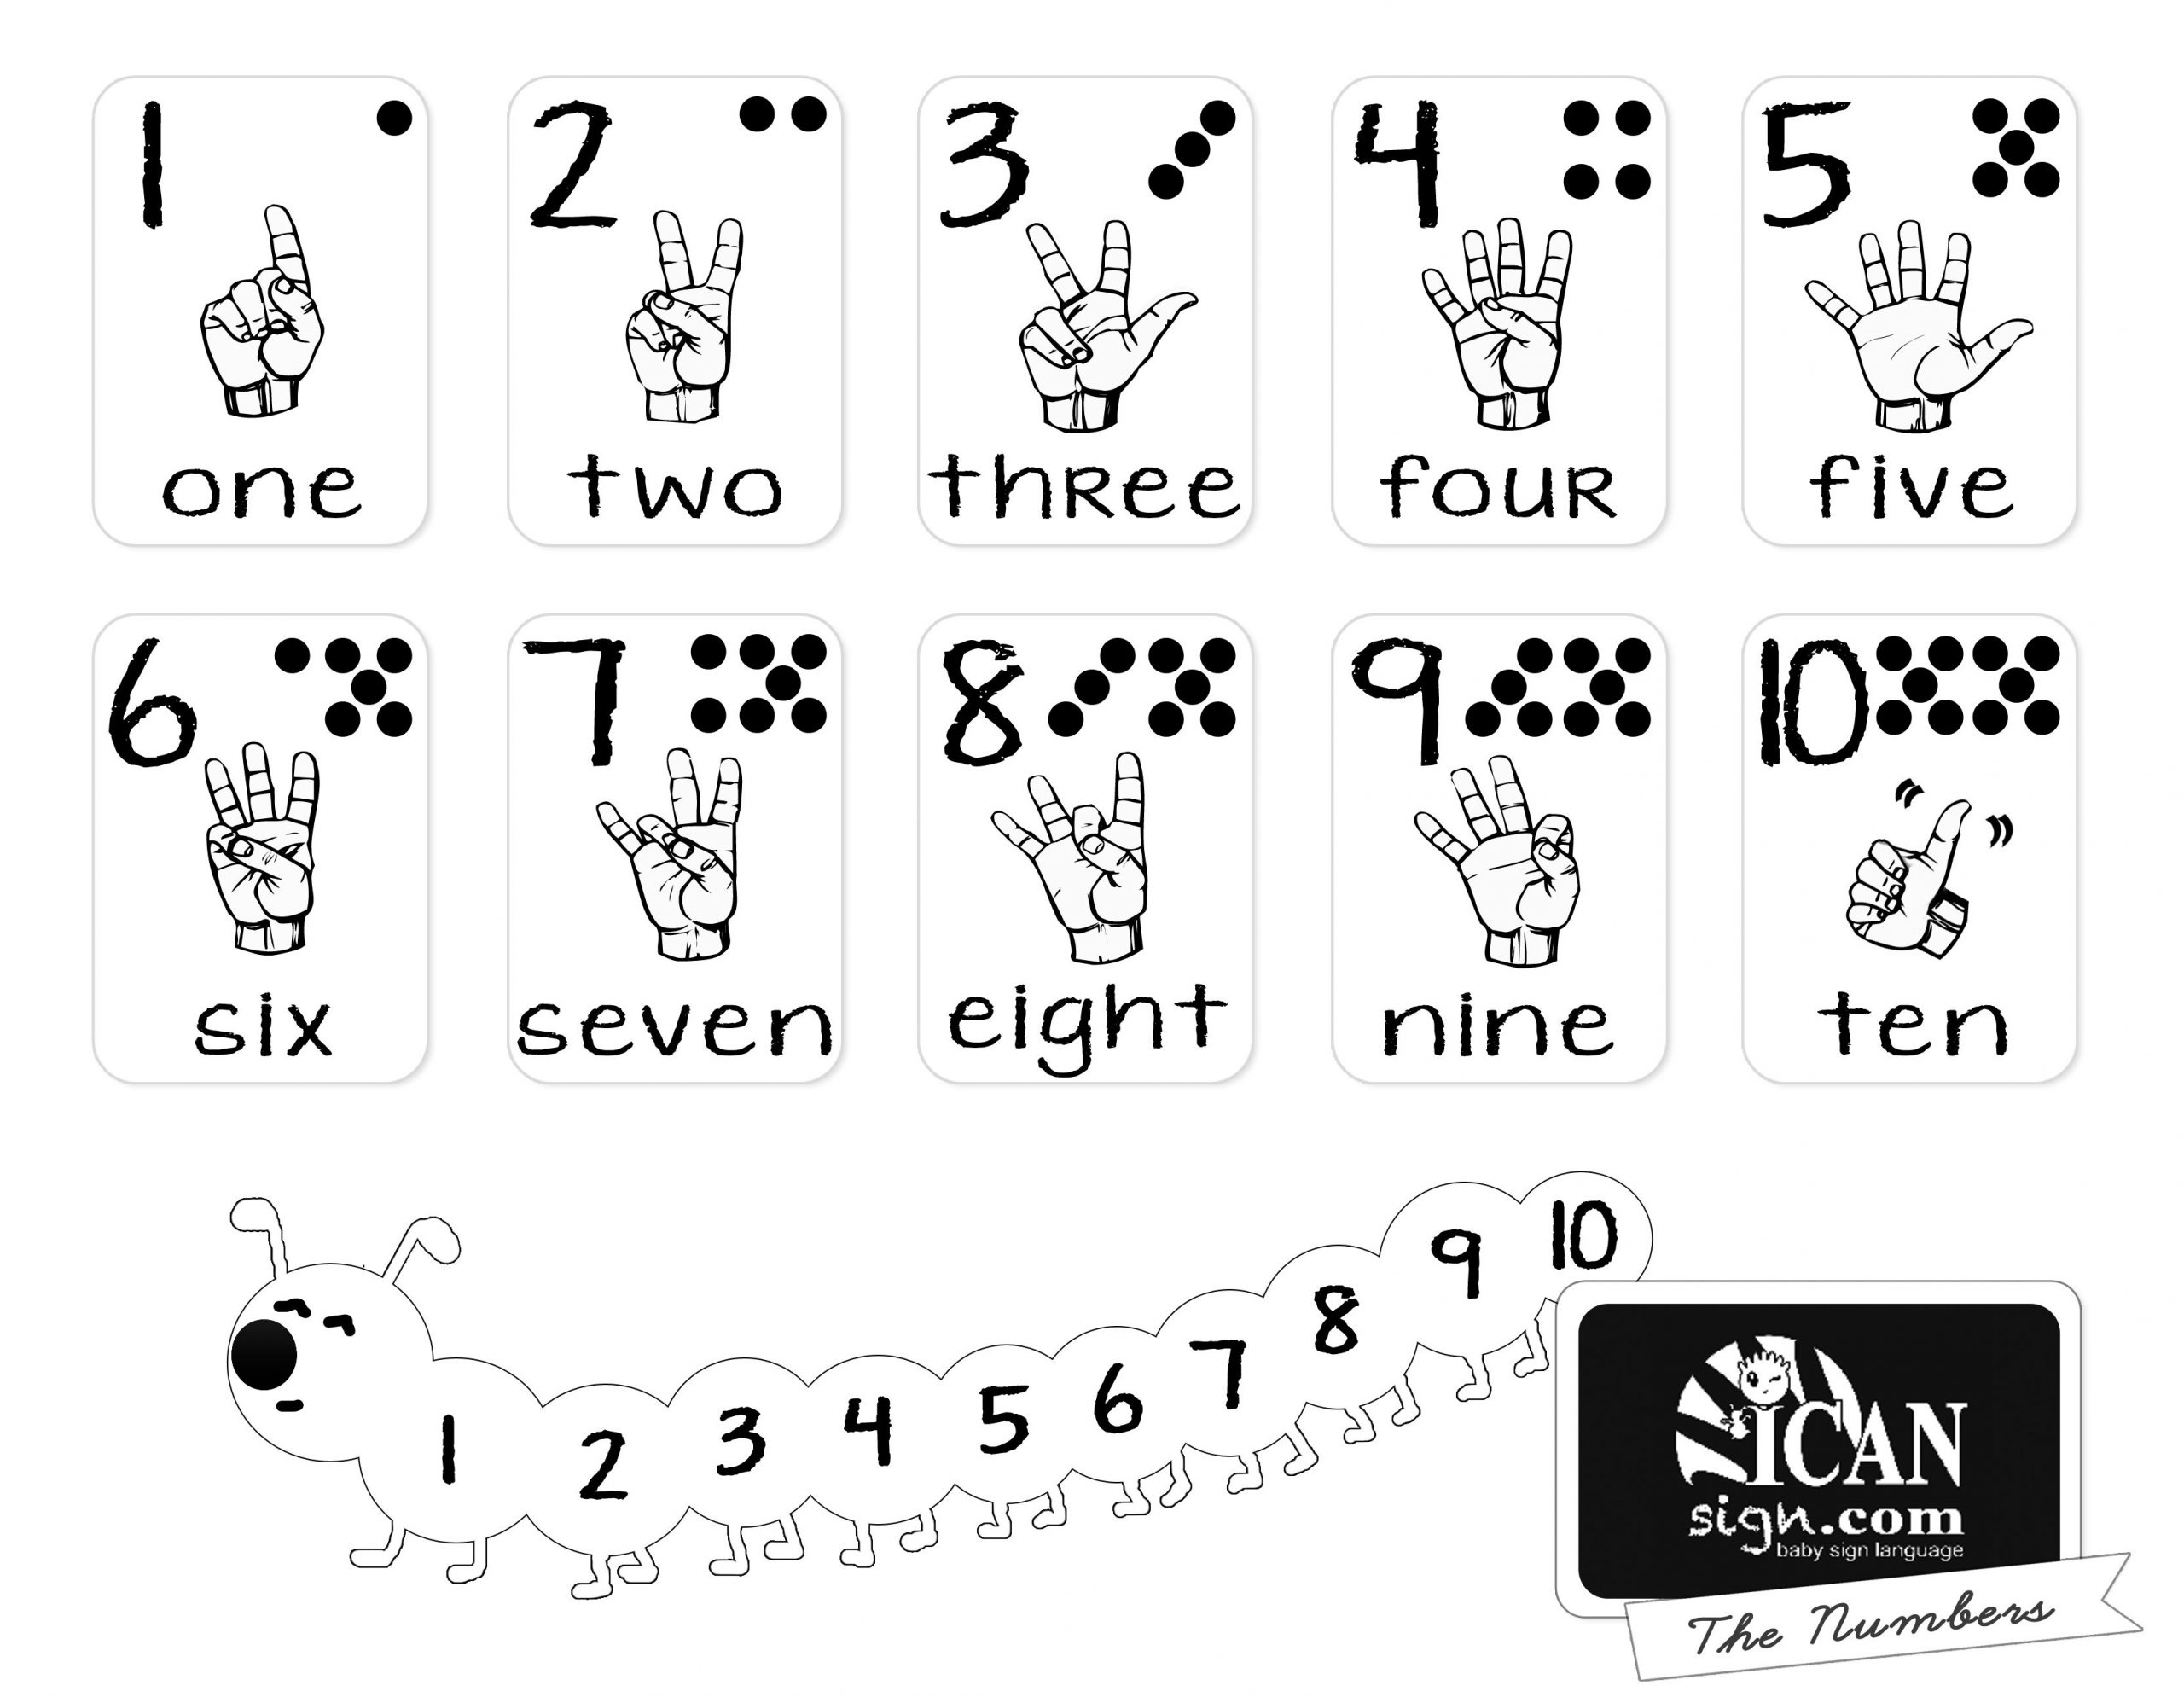 Printer-Friendly Asl Numbers Chart - Free Printable From